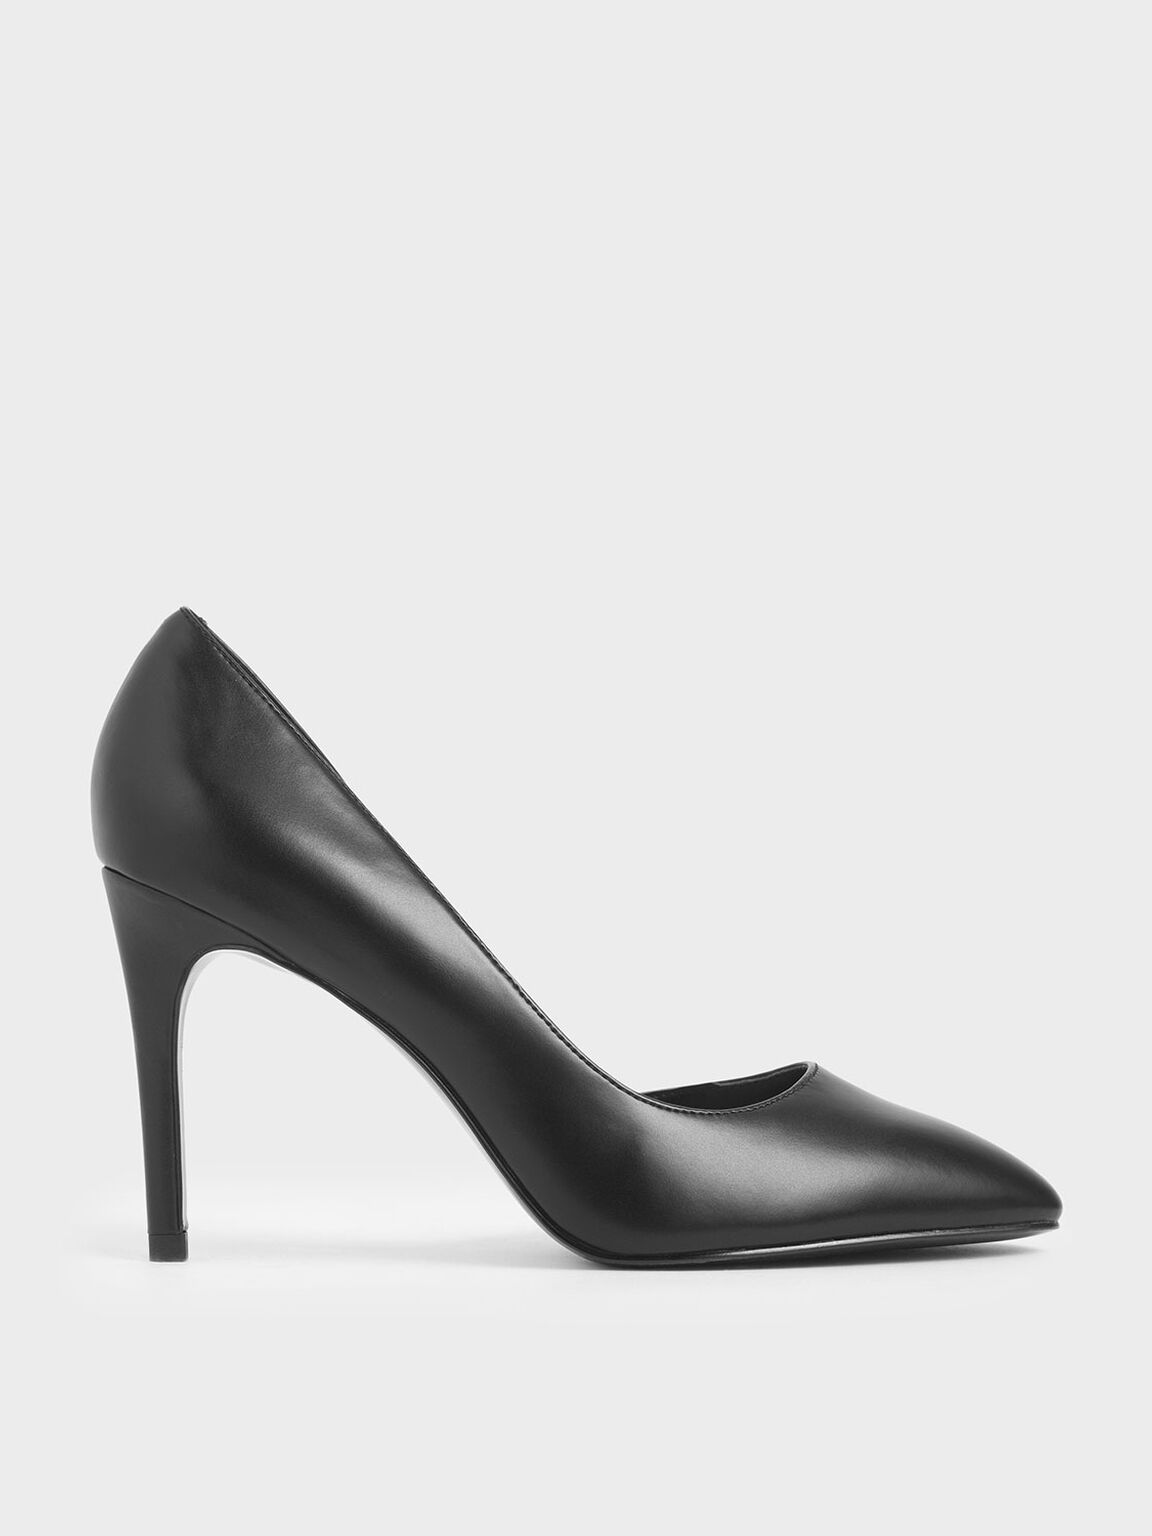 D'Orsay Stiletto Pumps, Black, hi-res